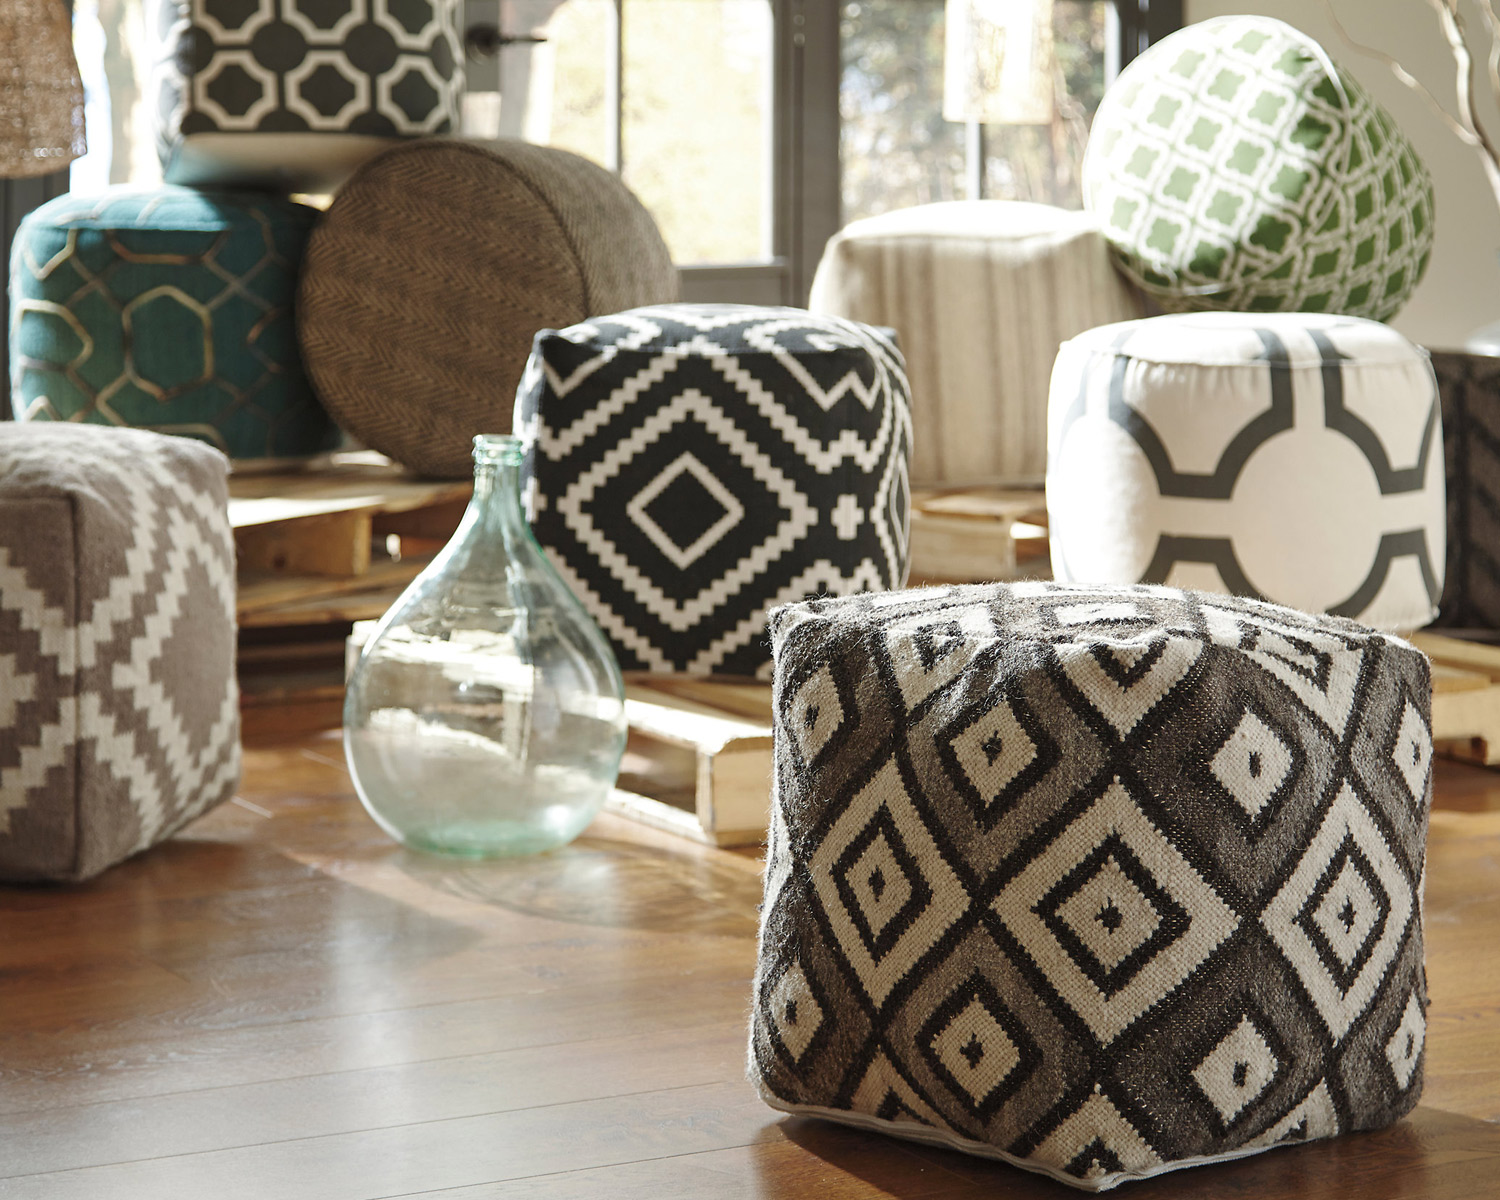 Great Tips & Ideas for Decorating with Pouf Ottomans